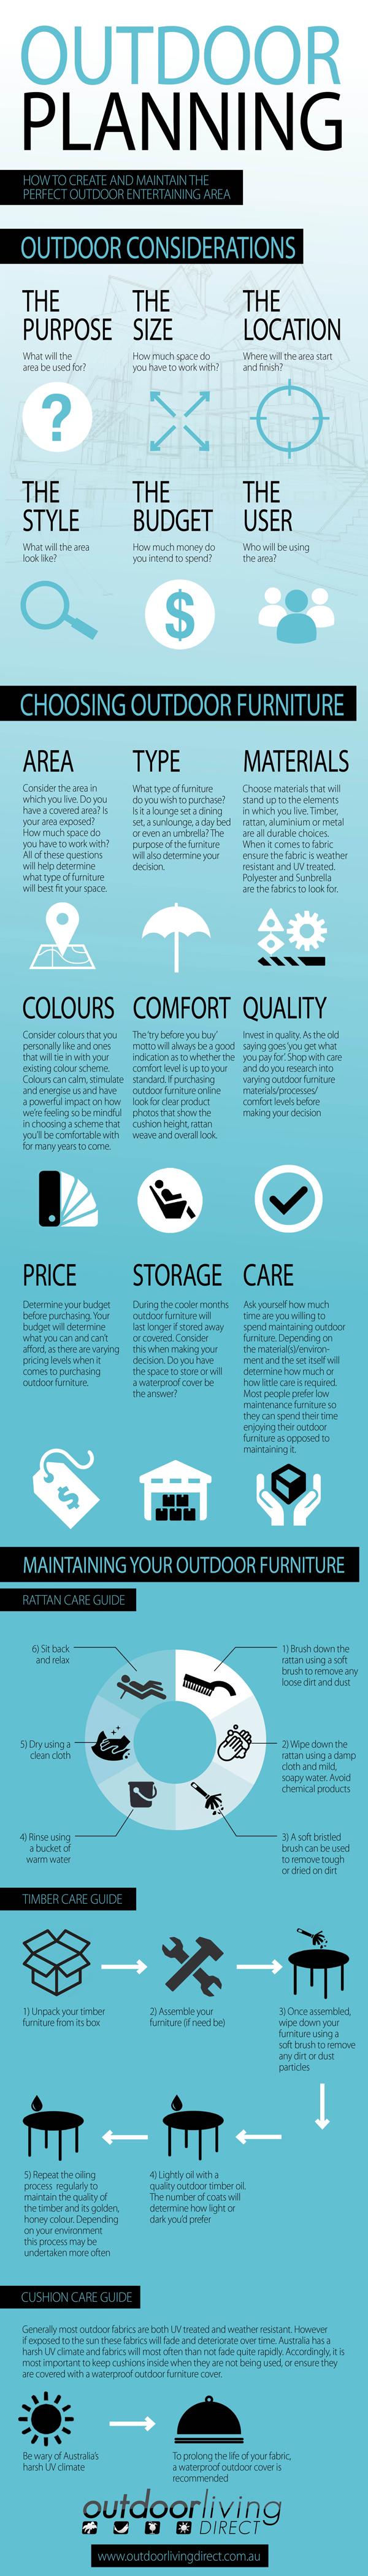 Outdoor-planning-infographic2